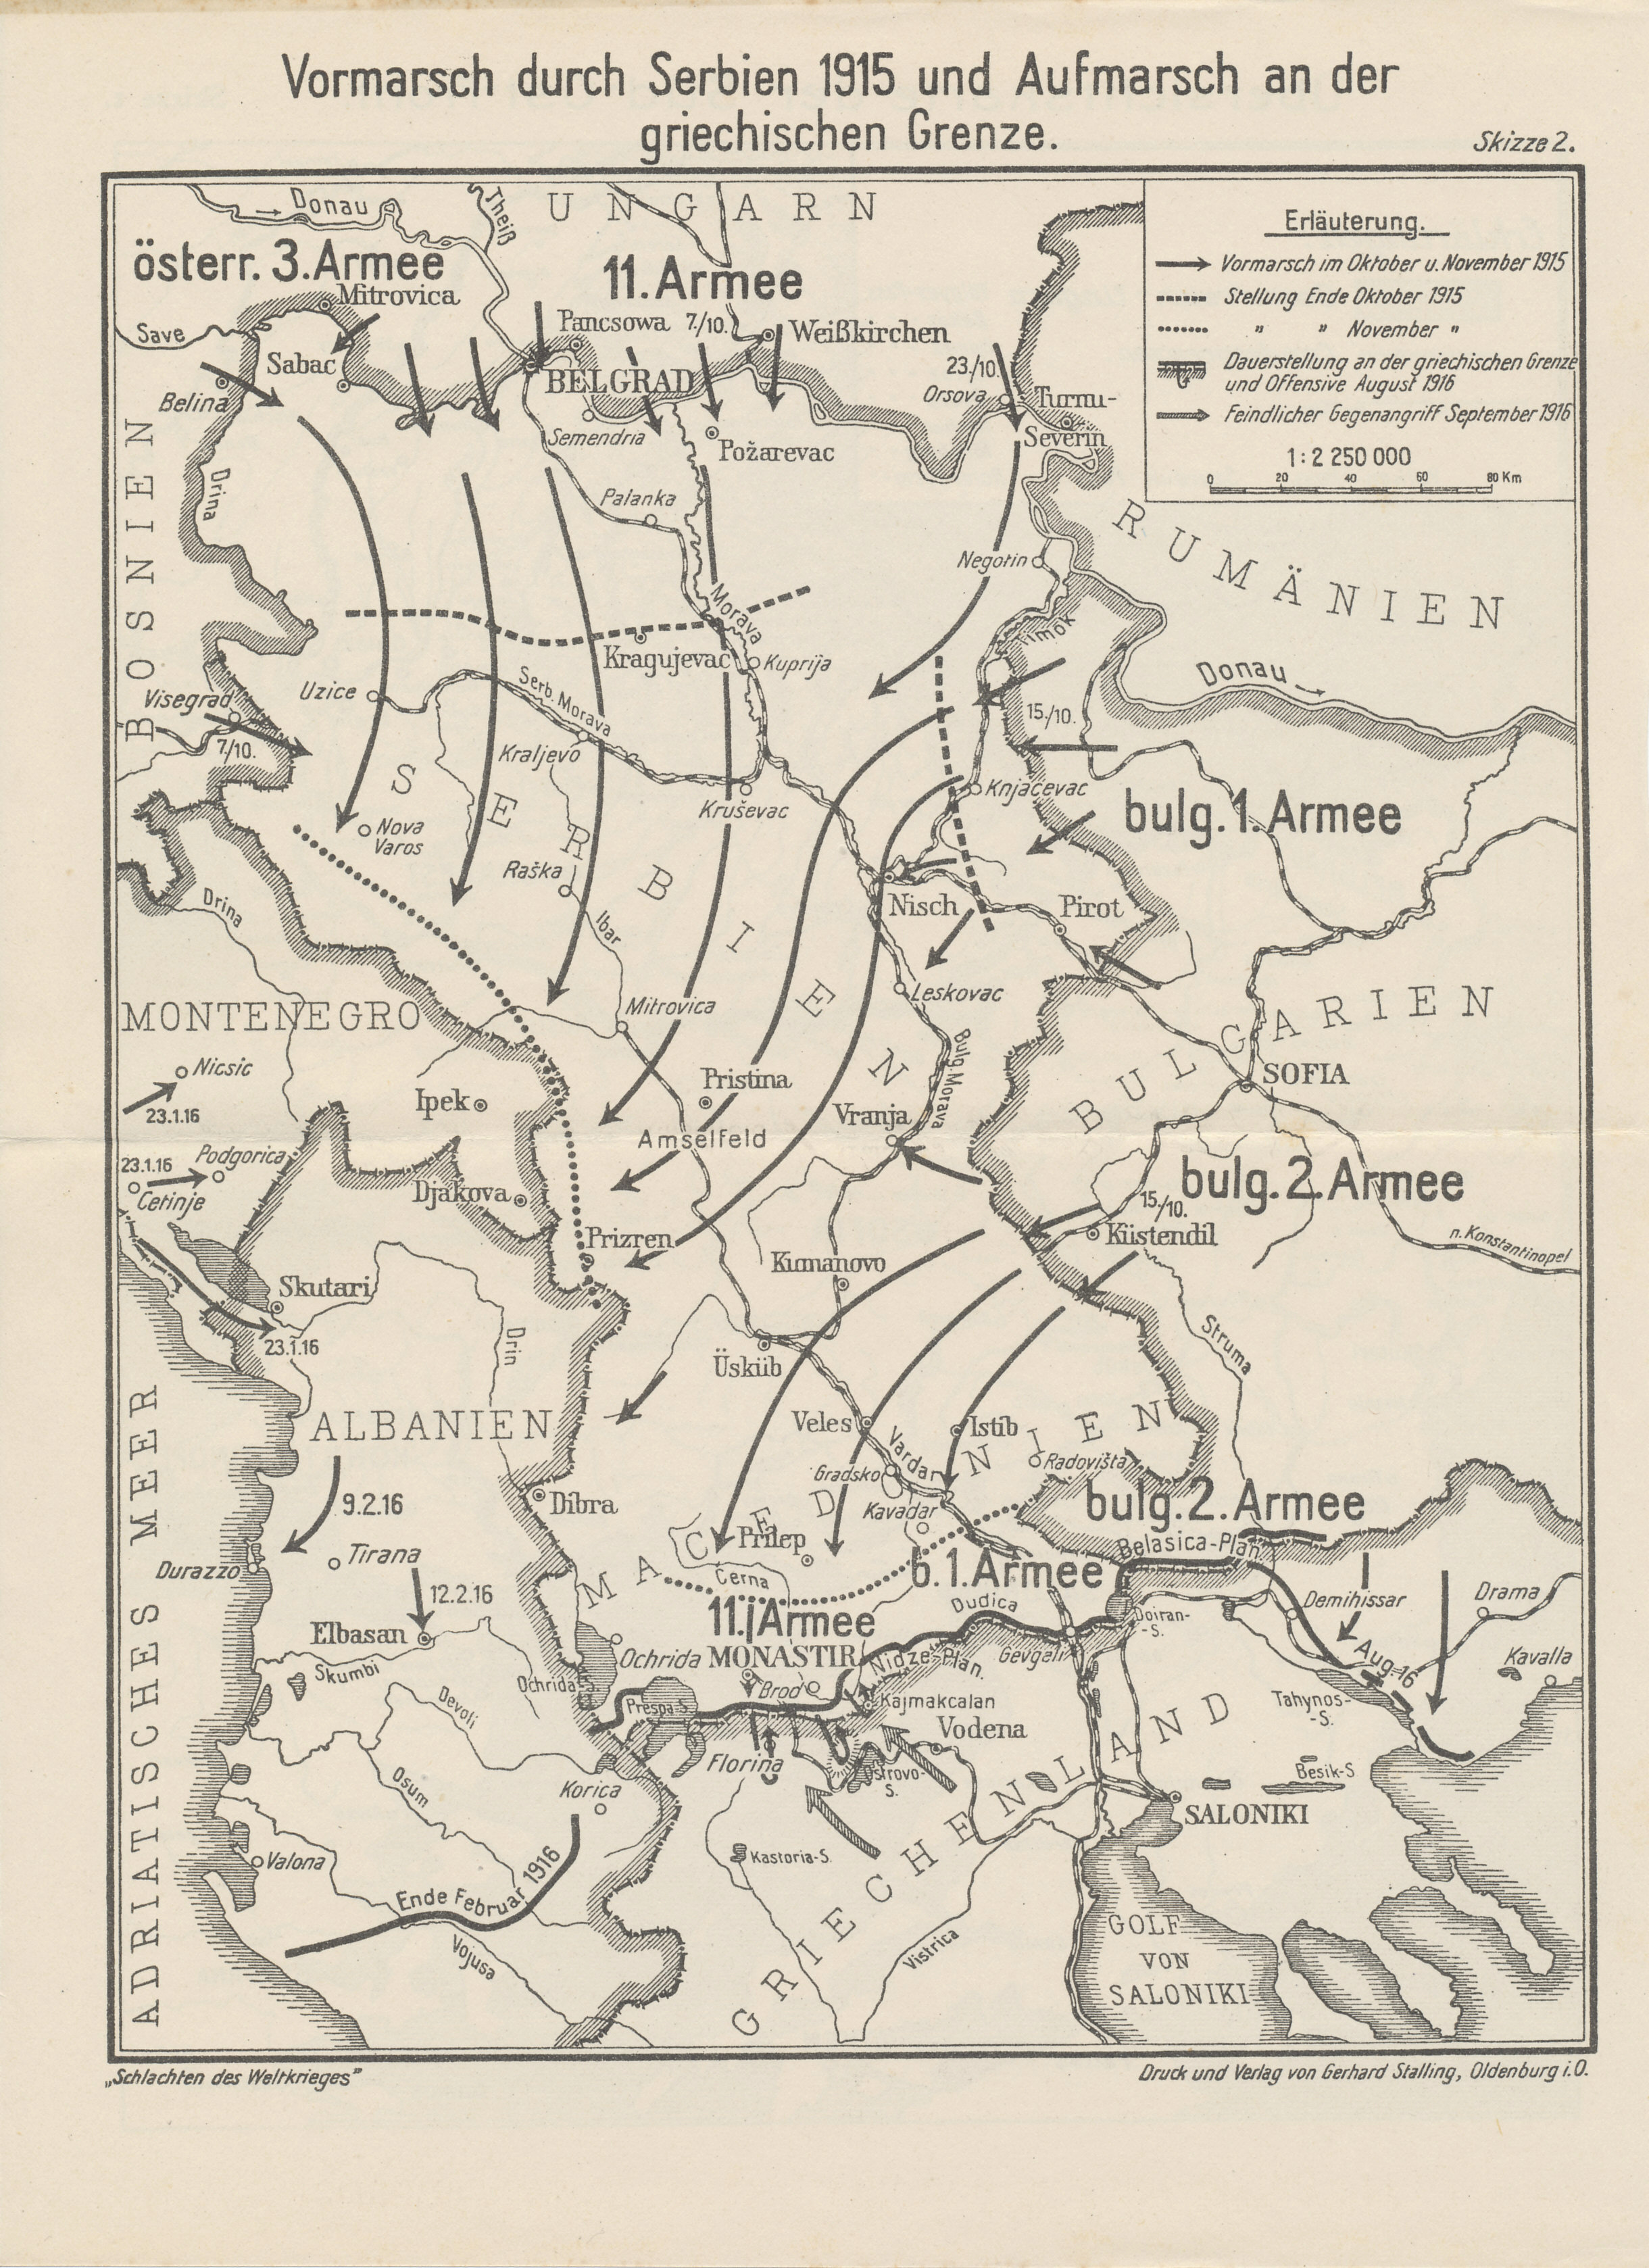 Map of the German, Austro-Hungarian, and Bulgarian advance into Serbia in October and November, 1915, with the Central Power offensive along the Greek border in August 1916 and the Allied counteroffensive the following month. Map from the Reichsarchiv Herbstschlacht in Macedonien (Autumn battle in Macedonia).